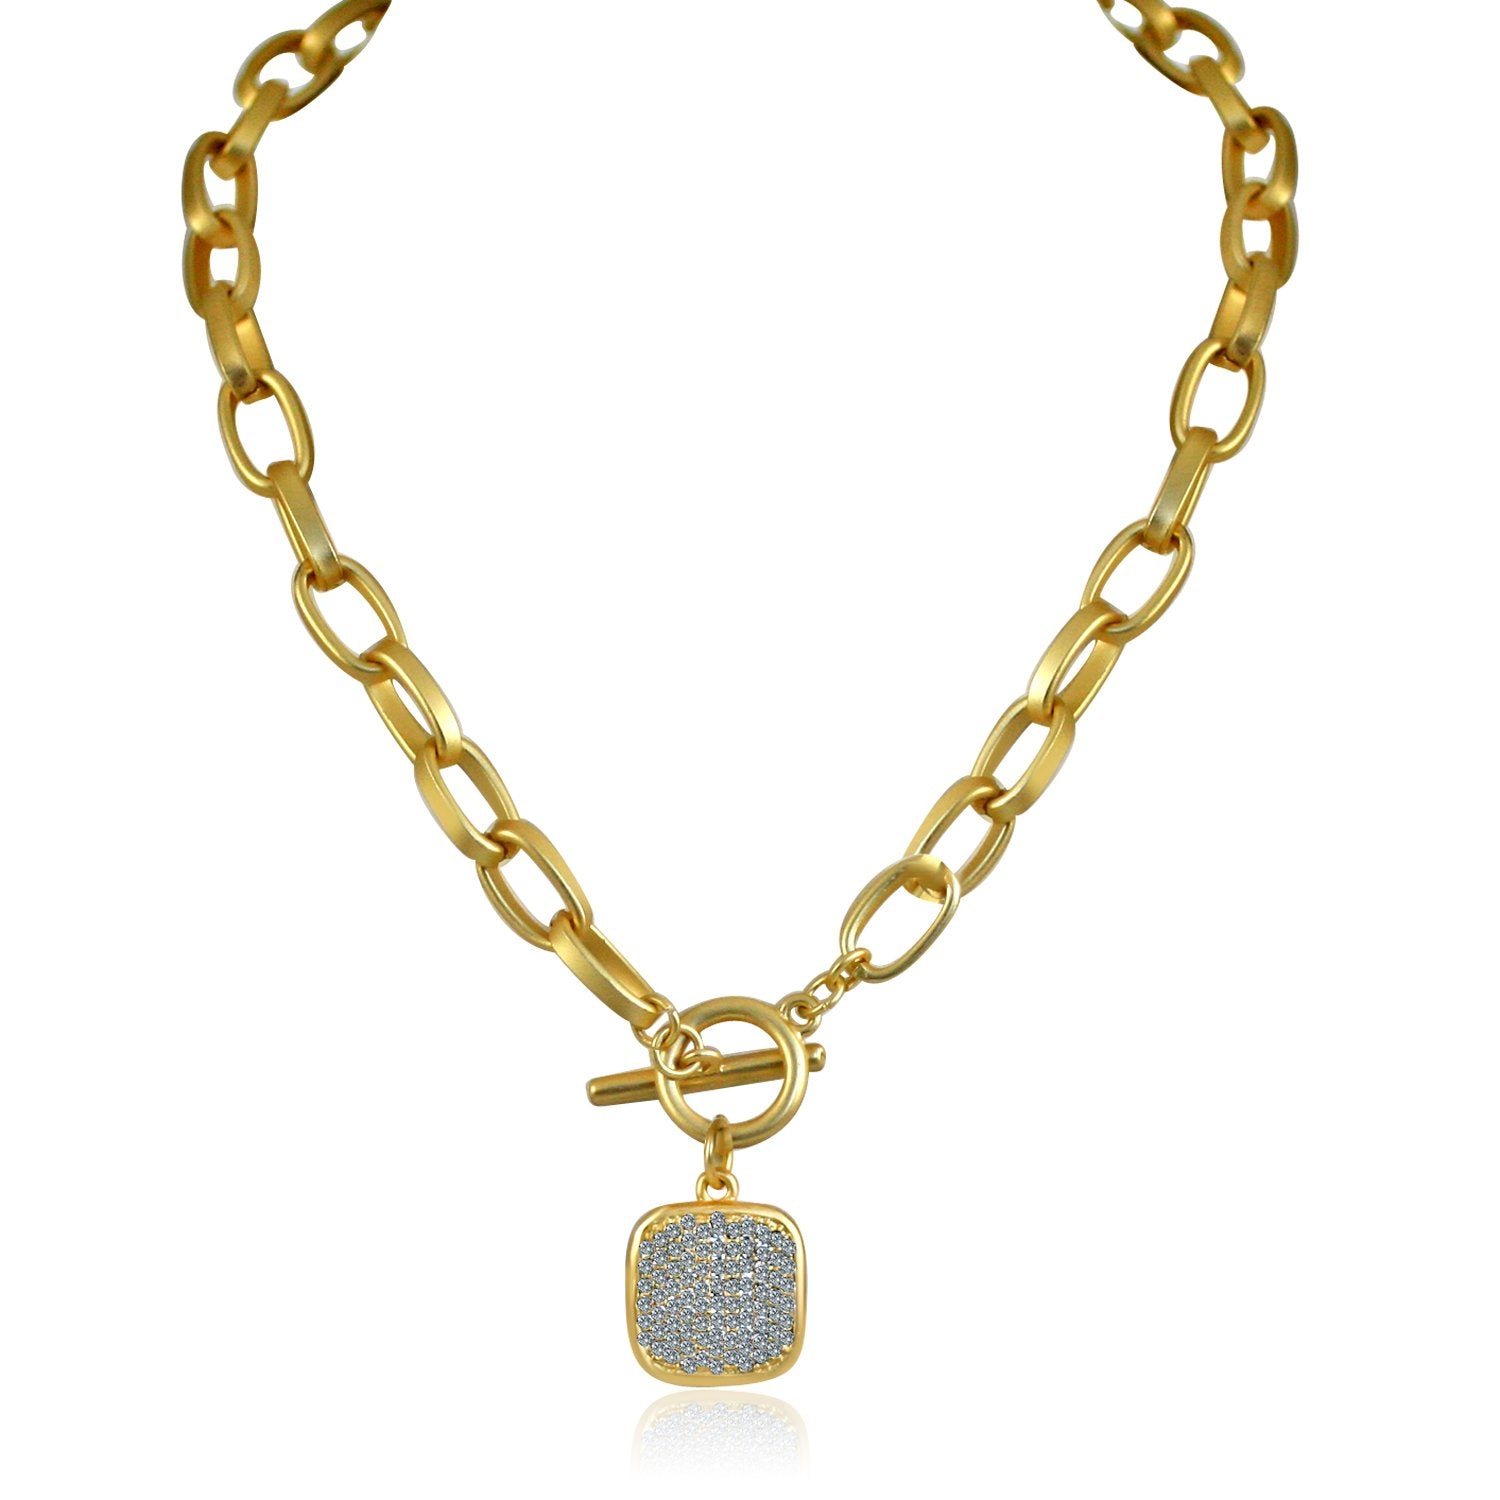 Sparkling Square Gold Pendant Paved with Cubic Zirconia Elongated Chain Link Toggle Clasp 689N791